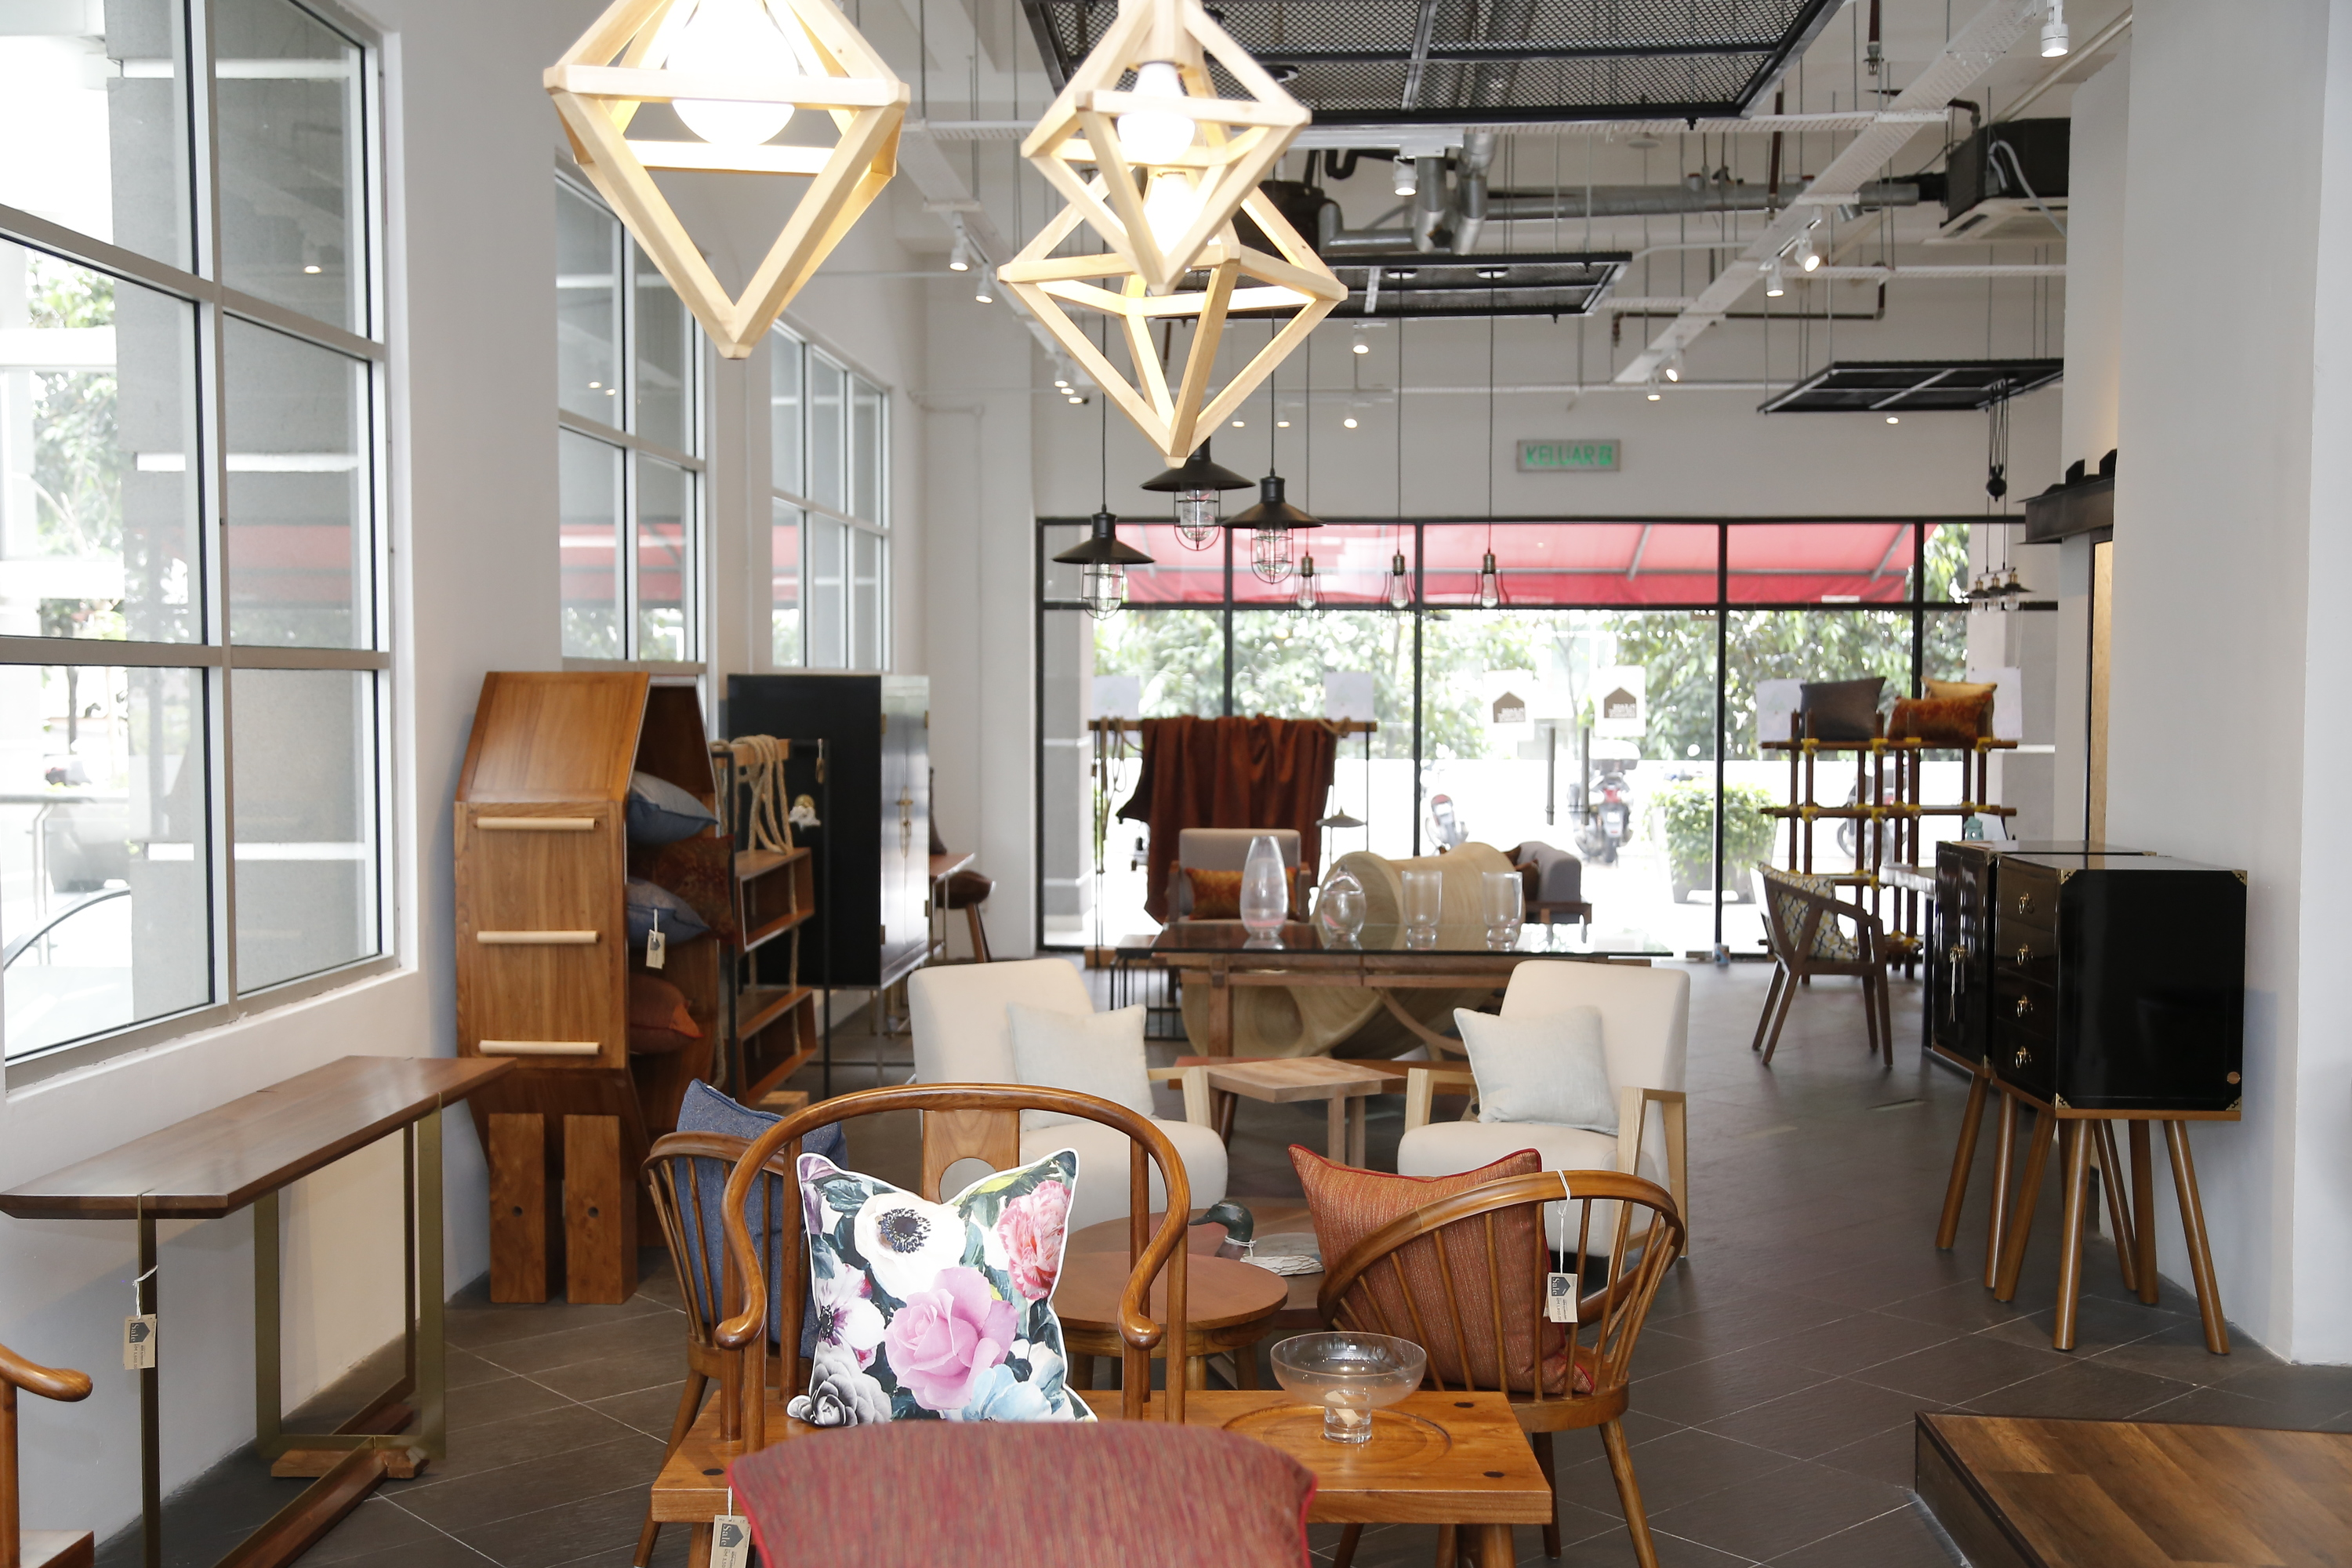 The best furniture and home decor stores in kl for Home decor furniture stores